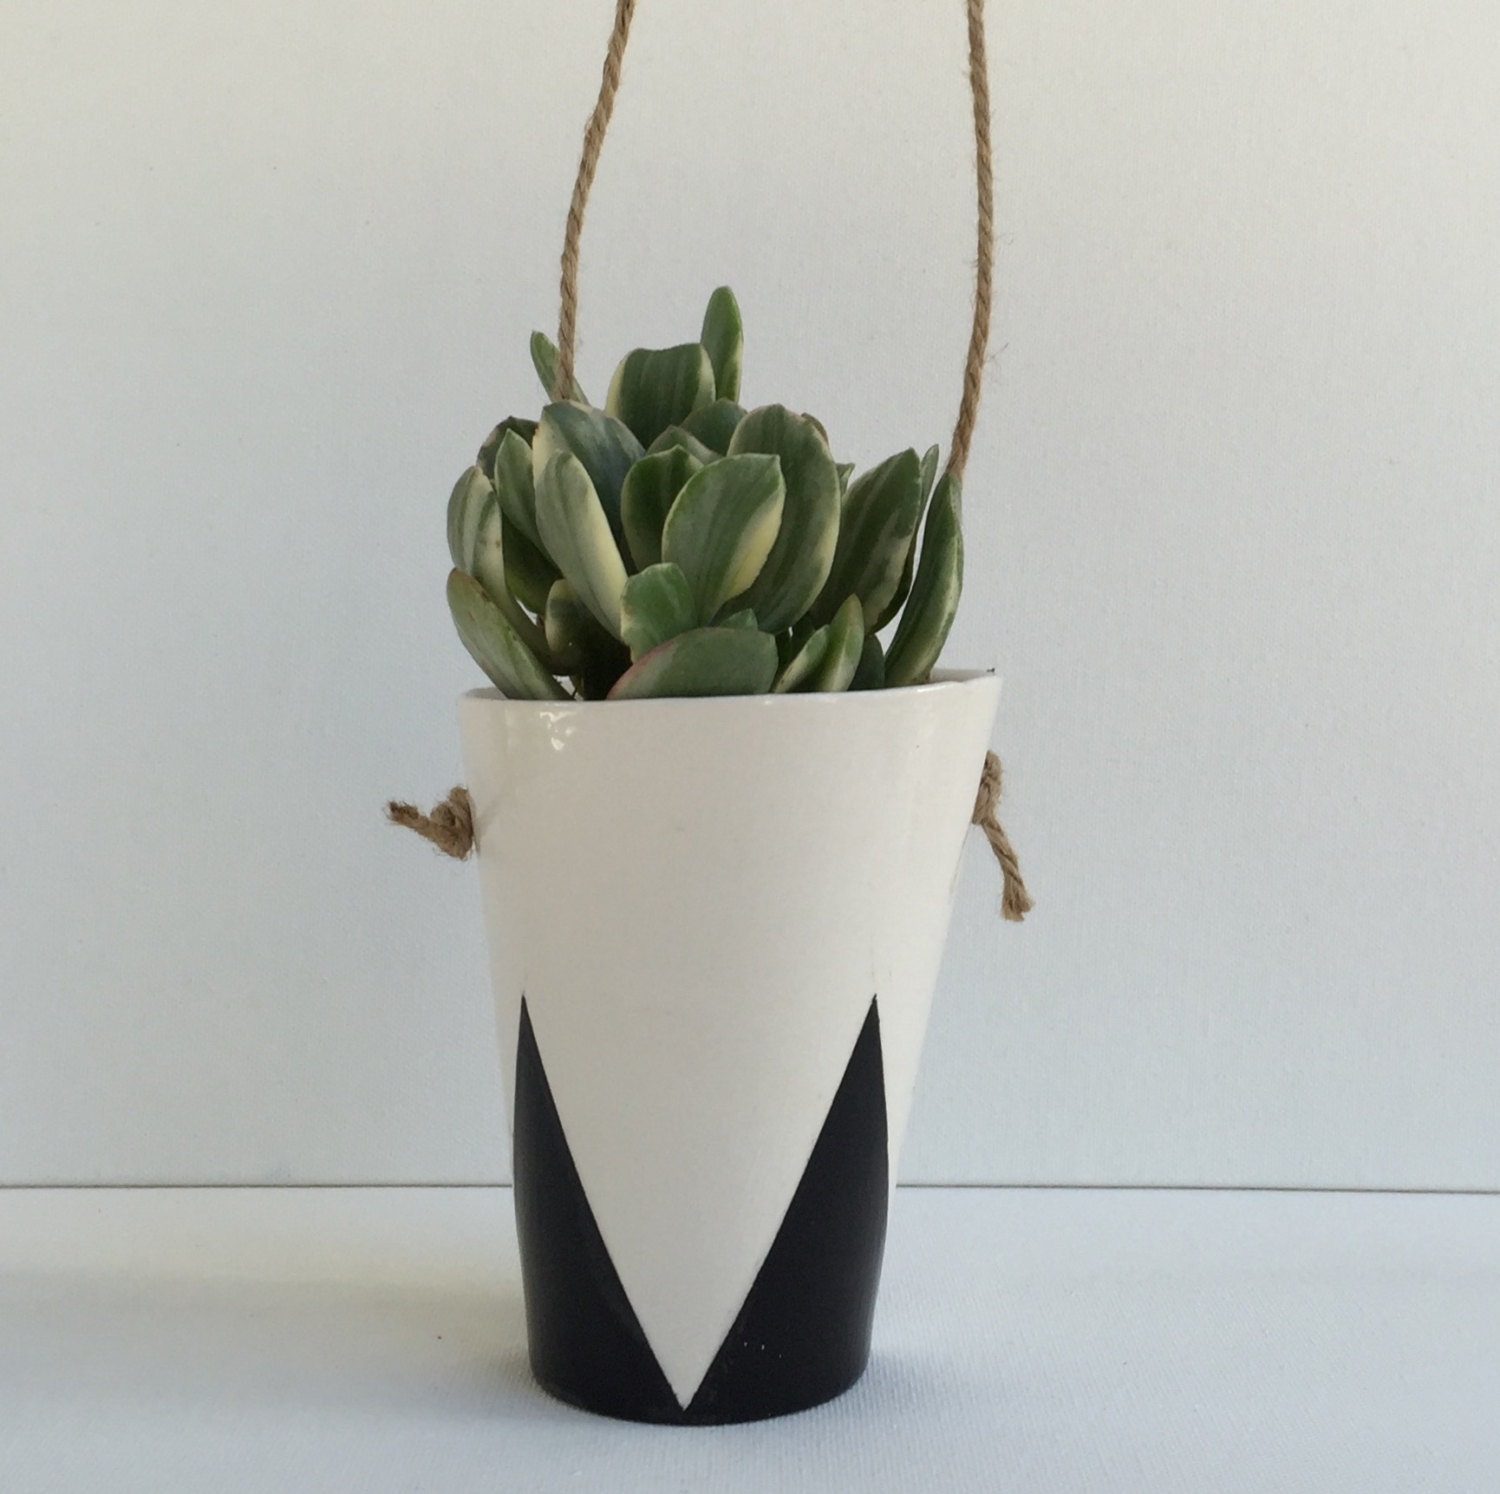 Hanging Planter with Modern Black Triangle Design by LunaReece